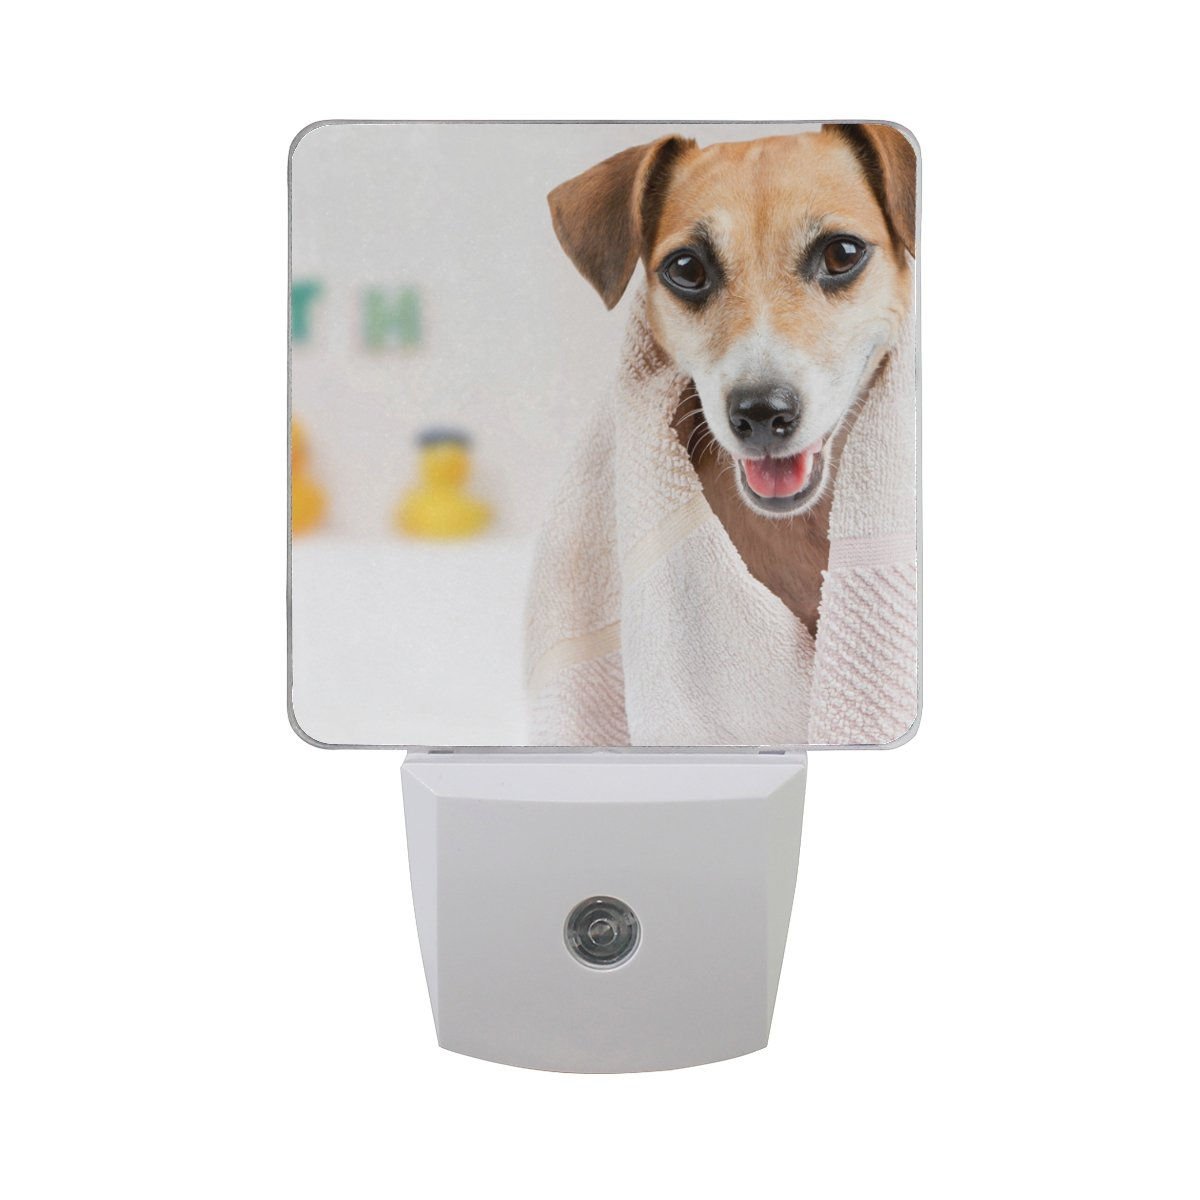 LED Night Light Clean Pet Spa Auto Senor Dusk to Dawn Night Light Great for Bedroom Bathroom Living Room Hallway Any Dark Room, for Child and Adults by Saobao